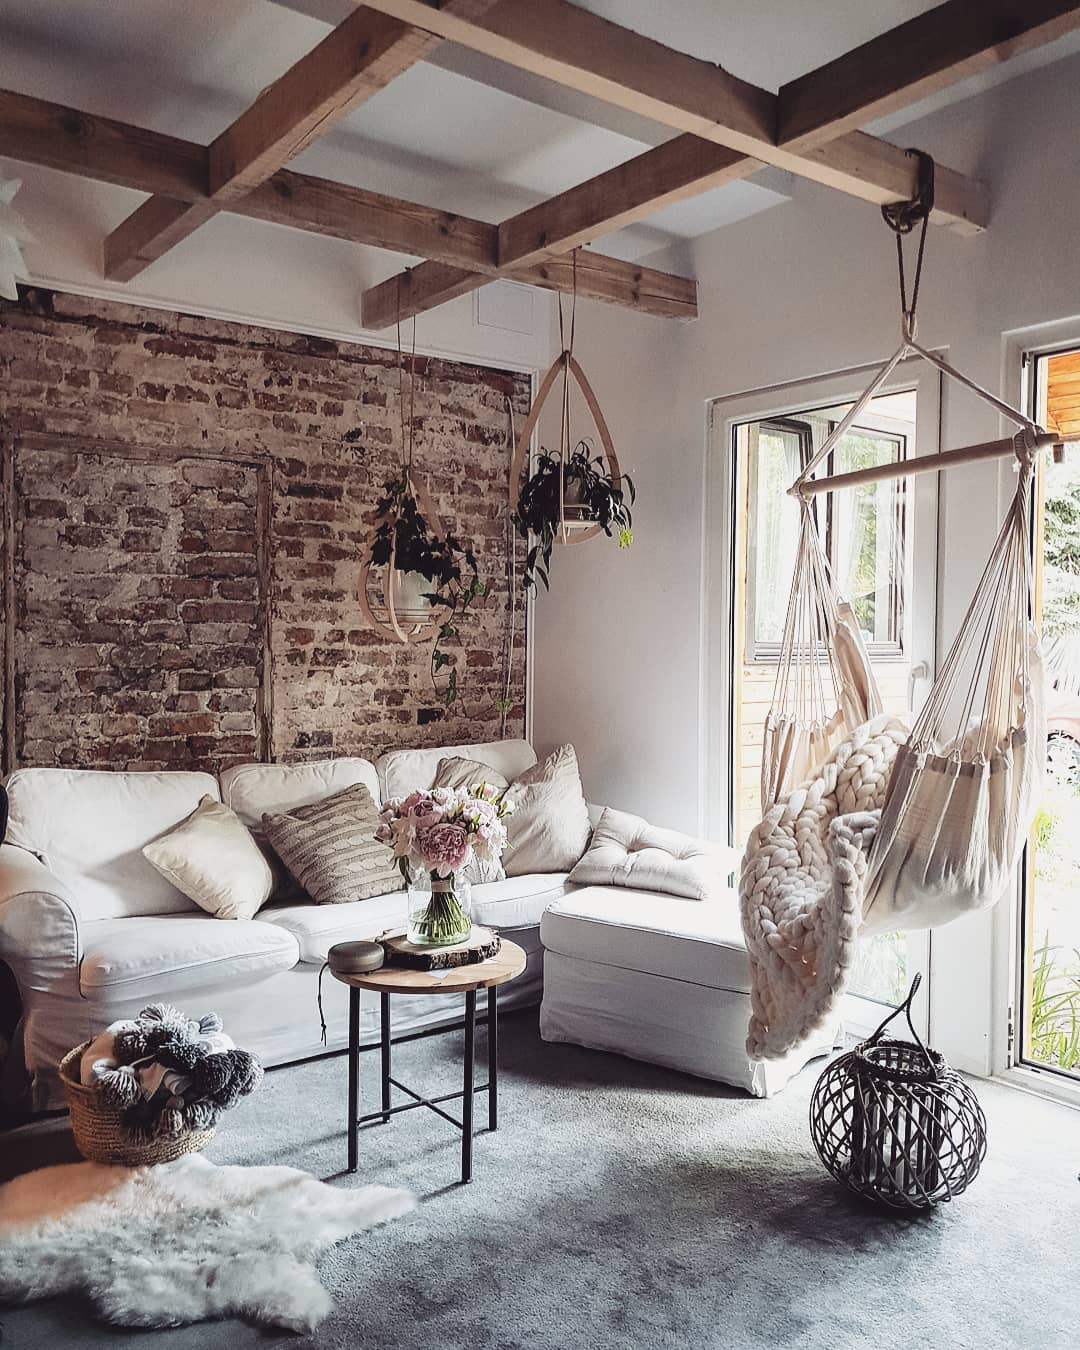 20 dreamy bohemian style decor ideas home and decoration tips